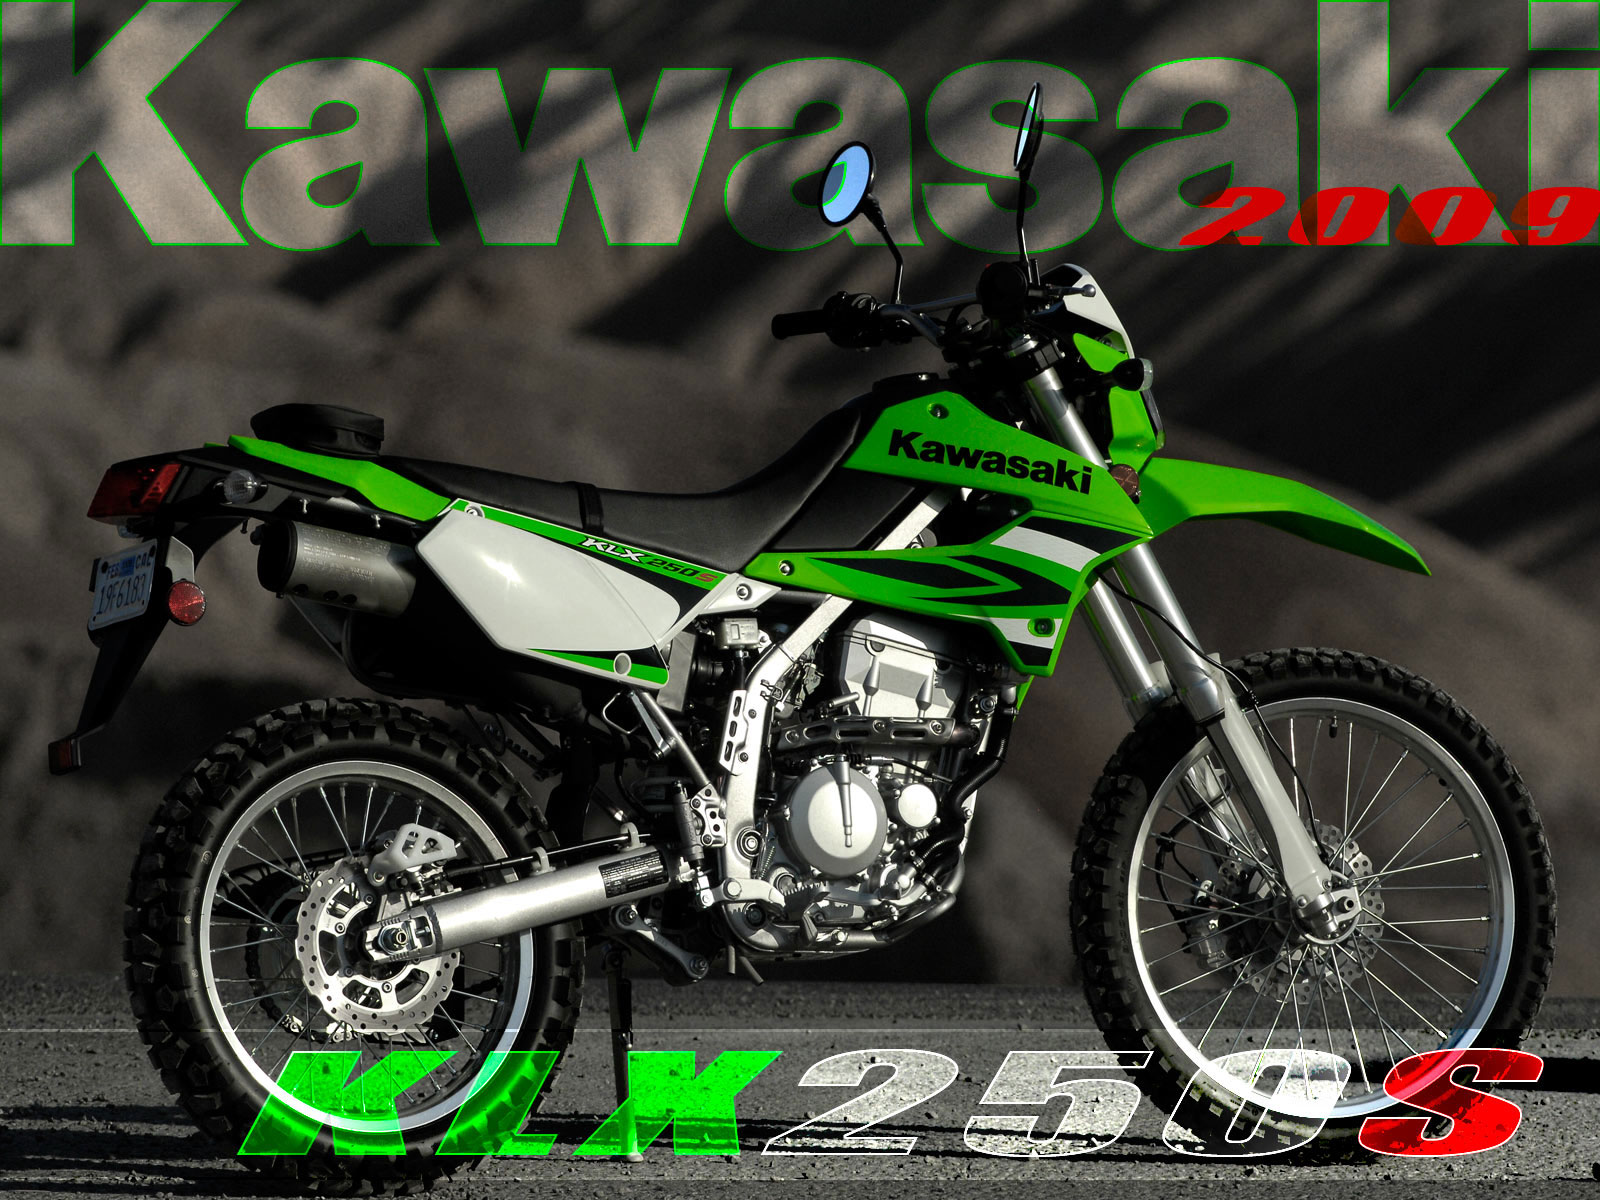 Kawasaki coyote photo - 2